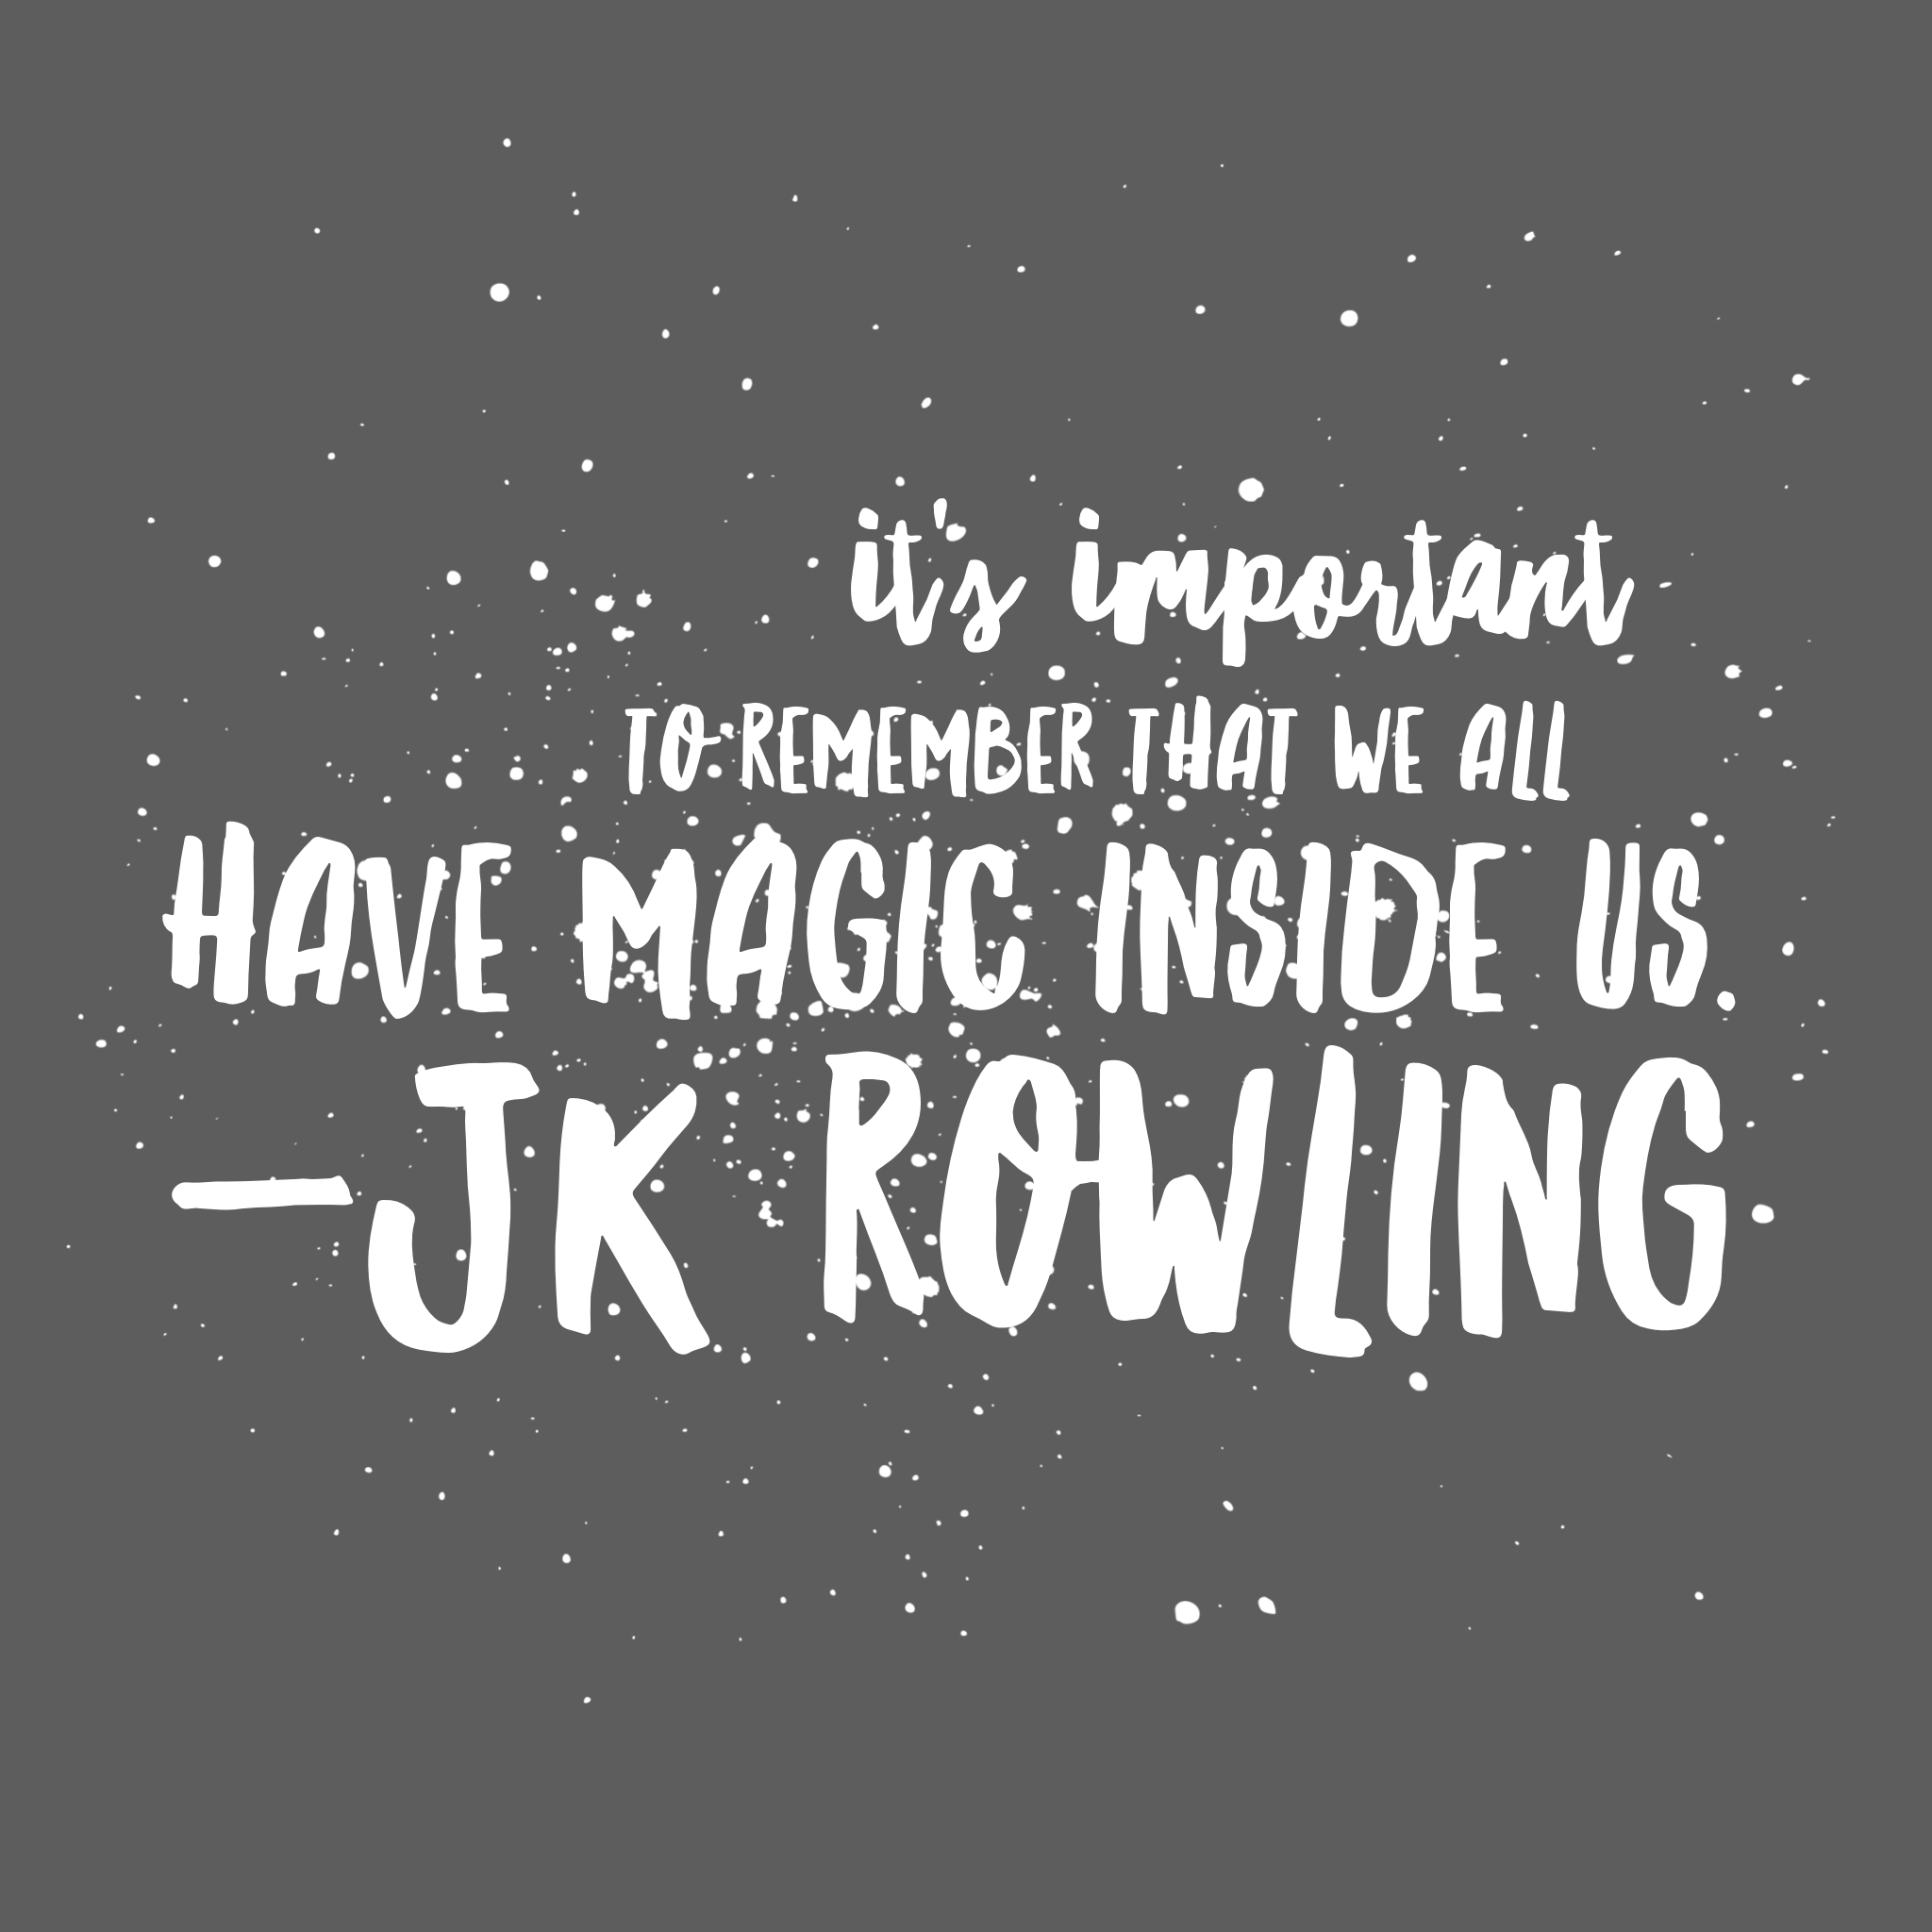 Harry Potter Quotes Love Inspiration Is My Child Ready To Read Harry Potter  Pinterest  Magic Quotes